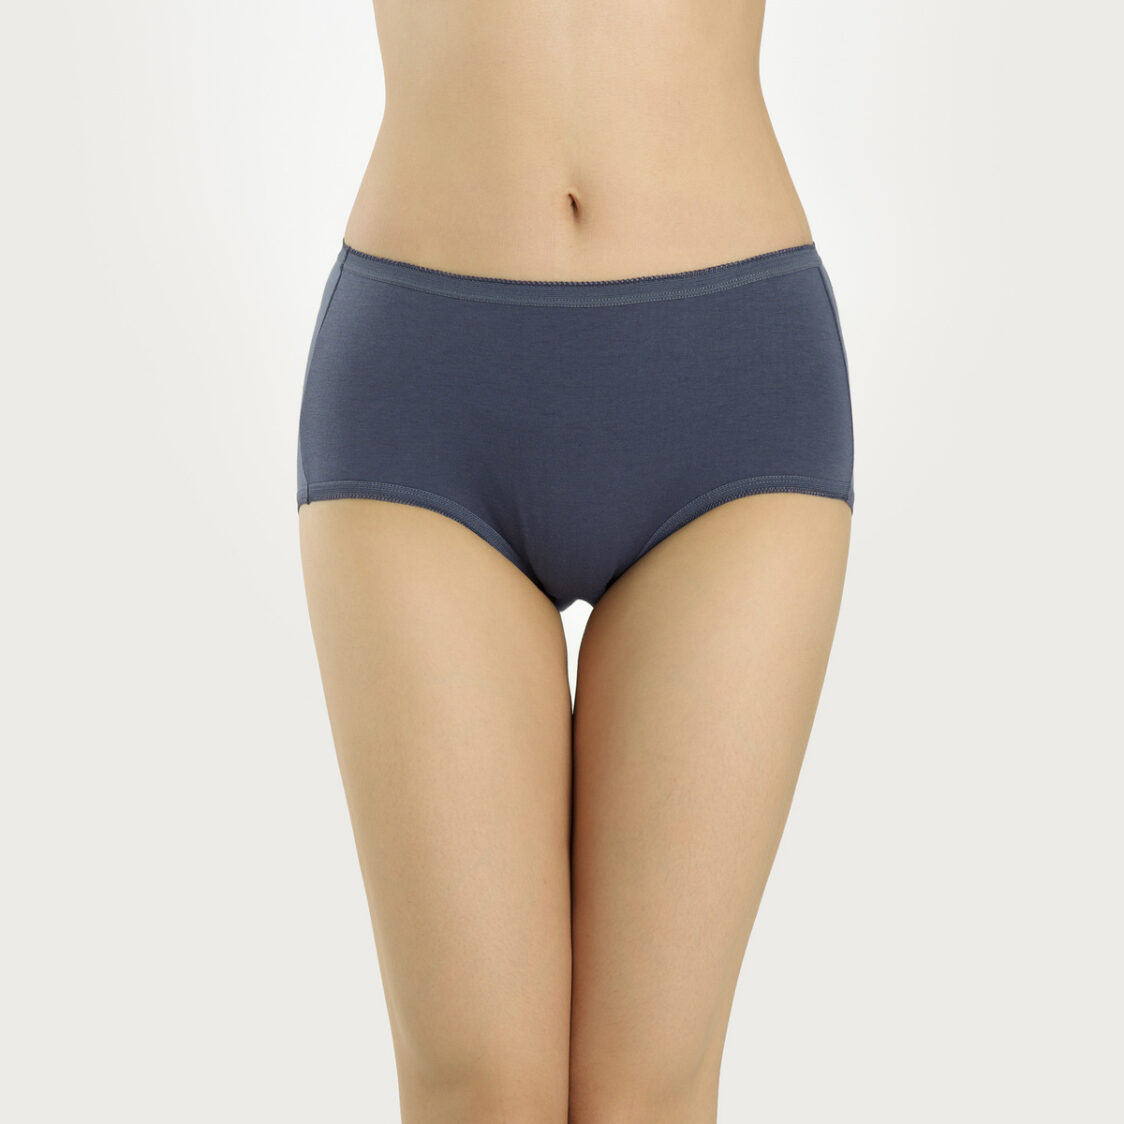 Snuggle Up 4 in 1 pack Panty - Maxi S25-073085MIX